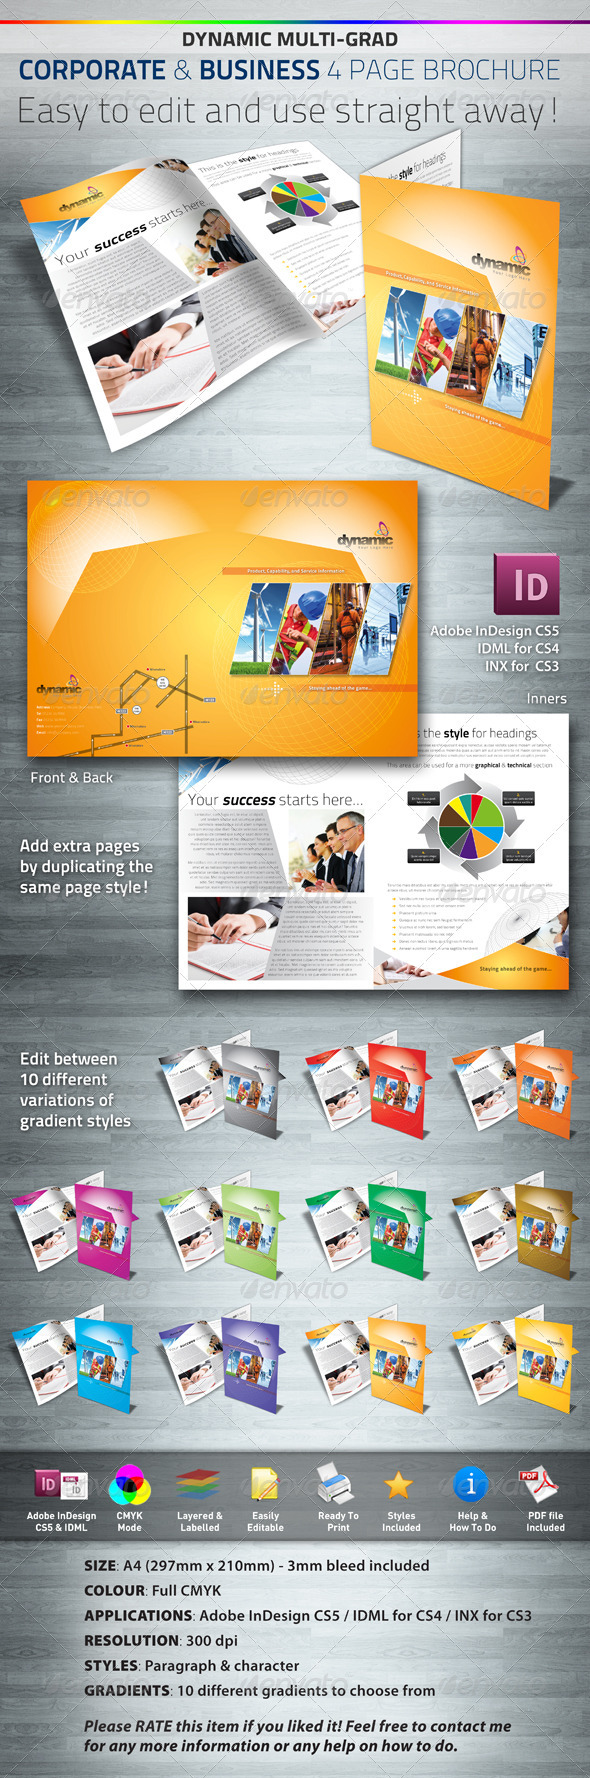 Dynamic Corporate & Business 4 Page Brochure - Corporate Brochures